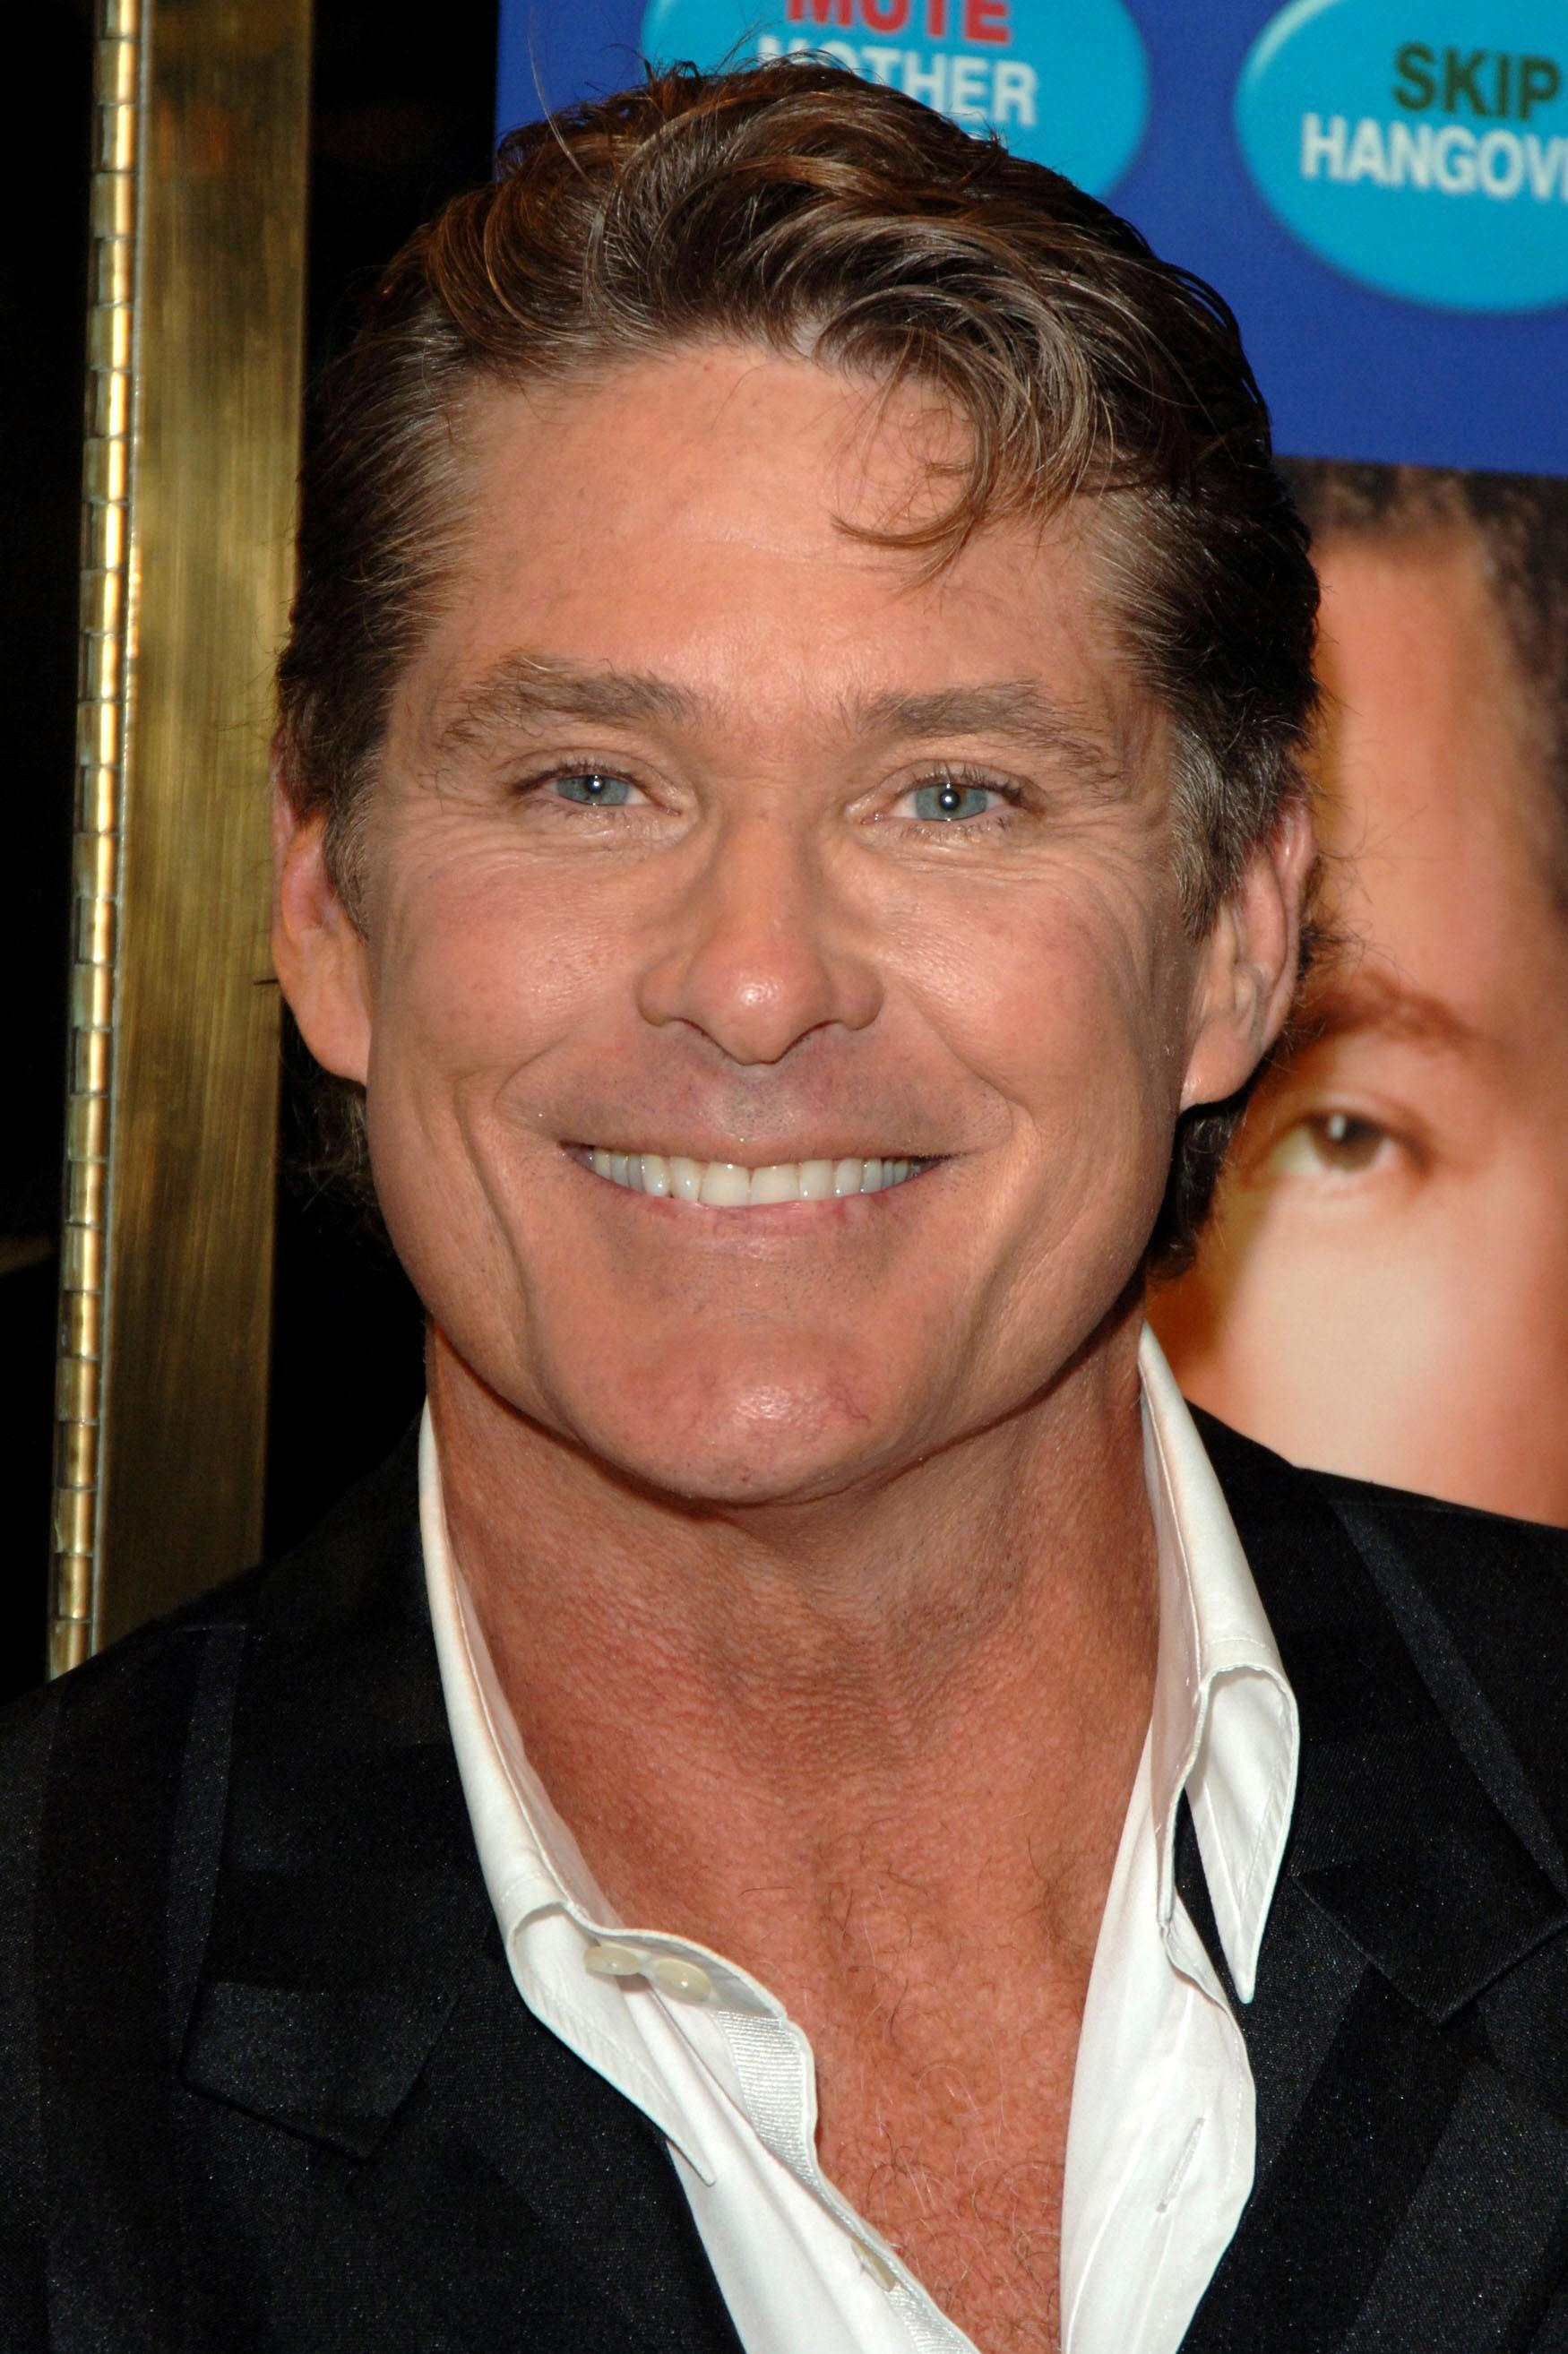 The Hoff forms unlikely TV bond with Radio 1 DJ